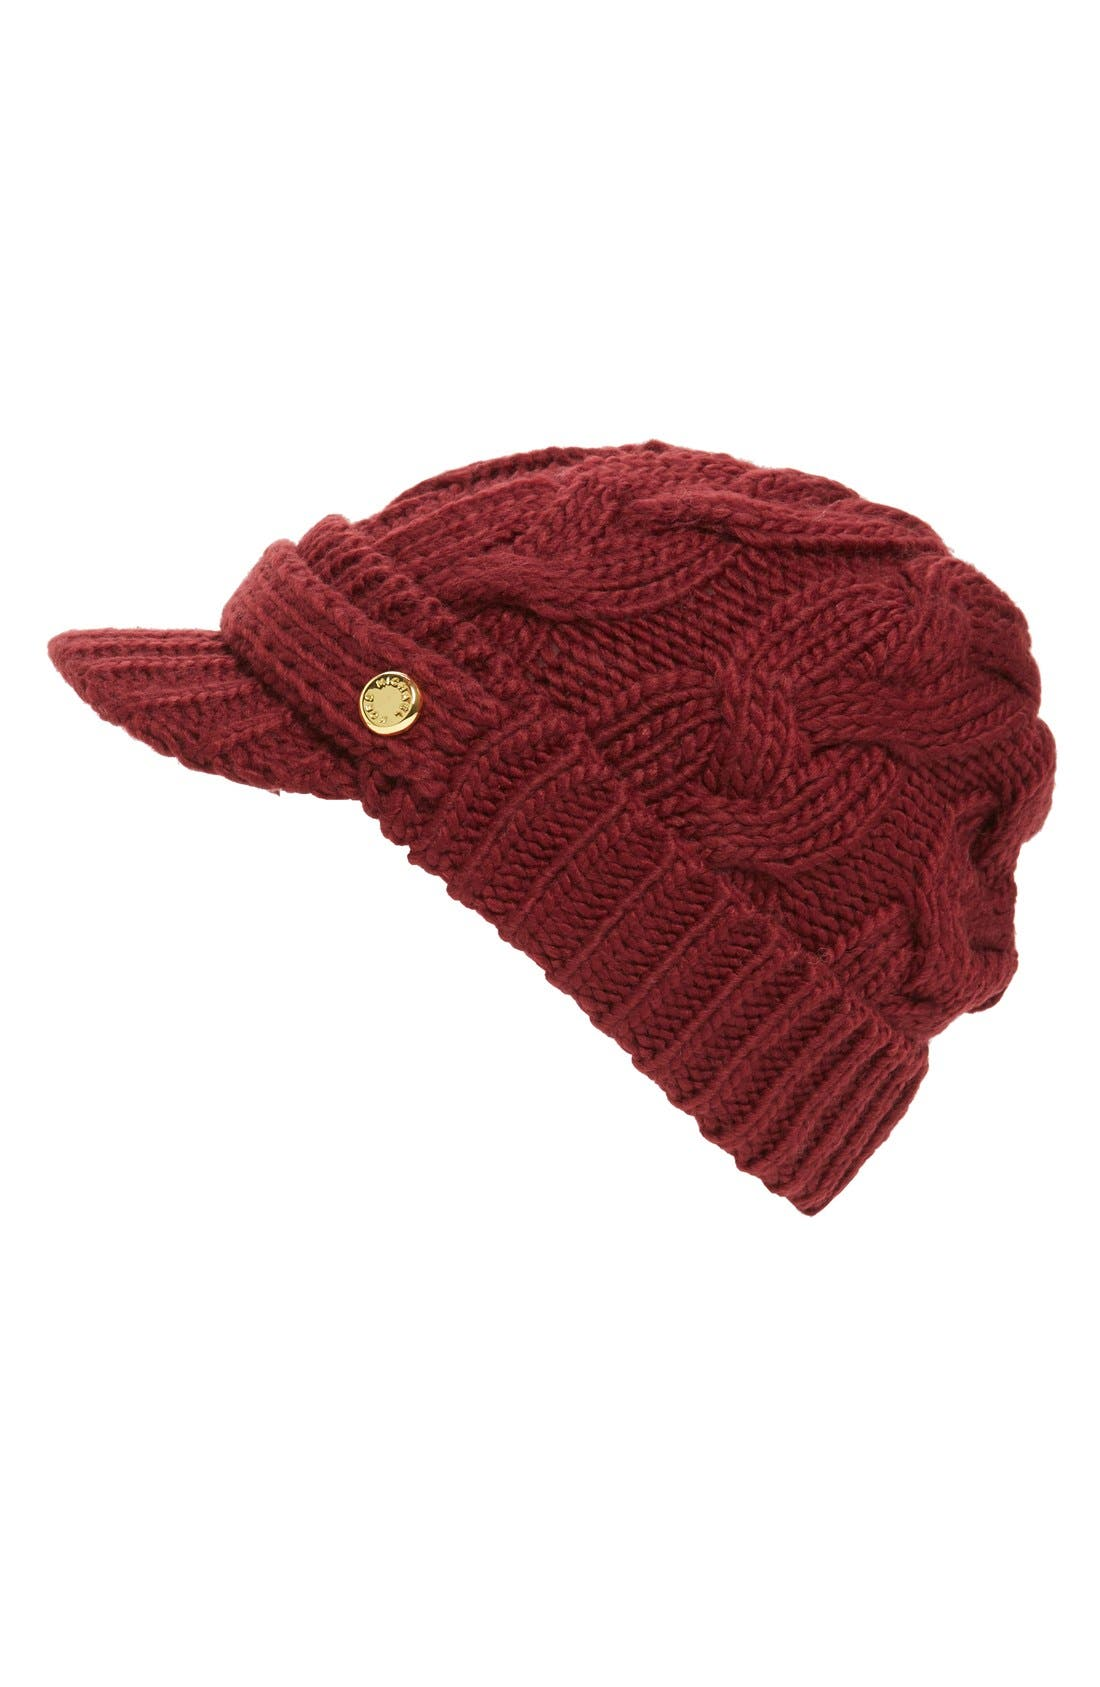 Alternate Image 1 Selected - MICHAEL Michael Kors Cable Knit Newsboy Hat